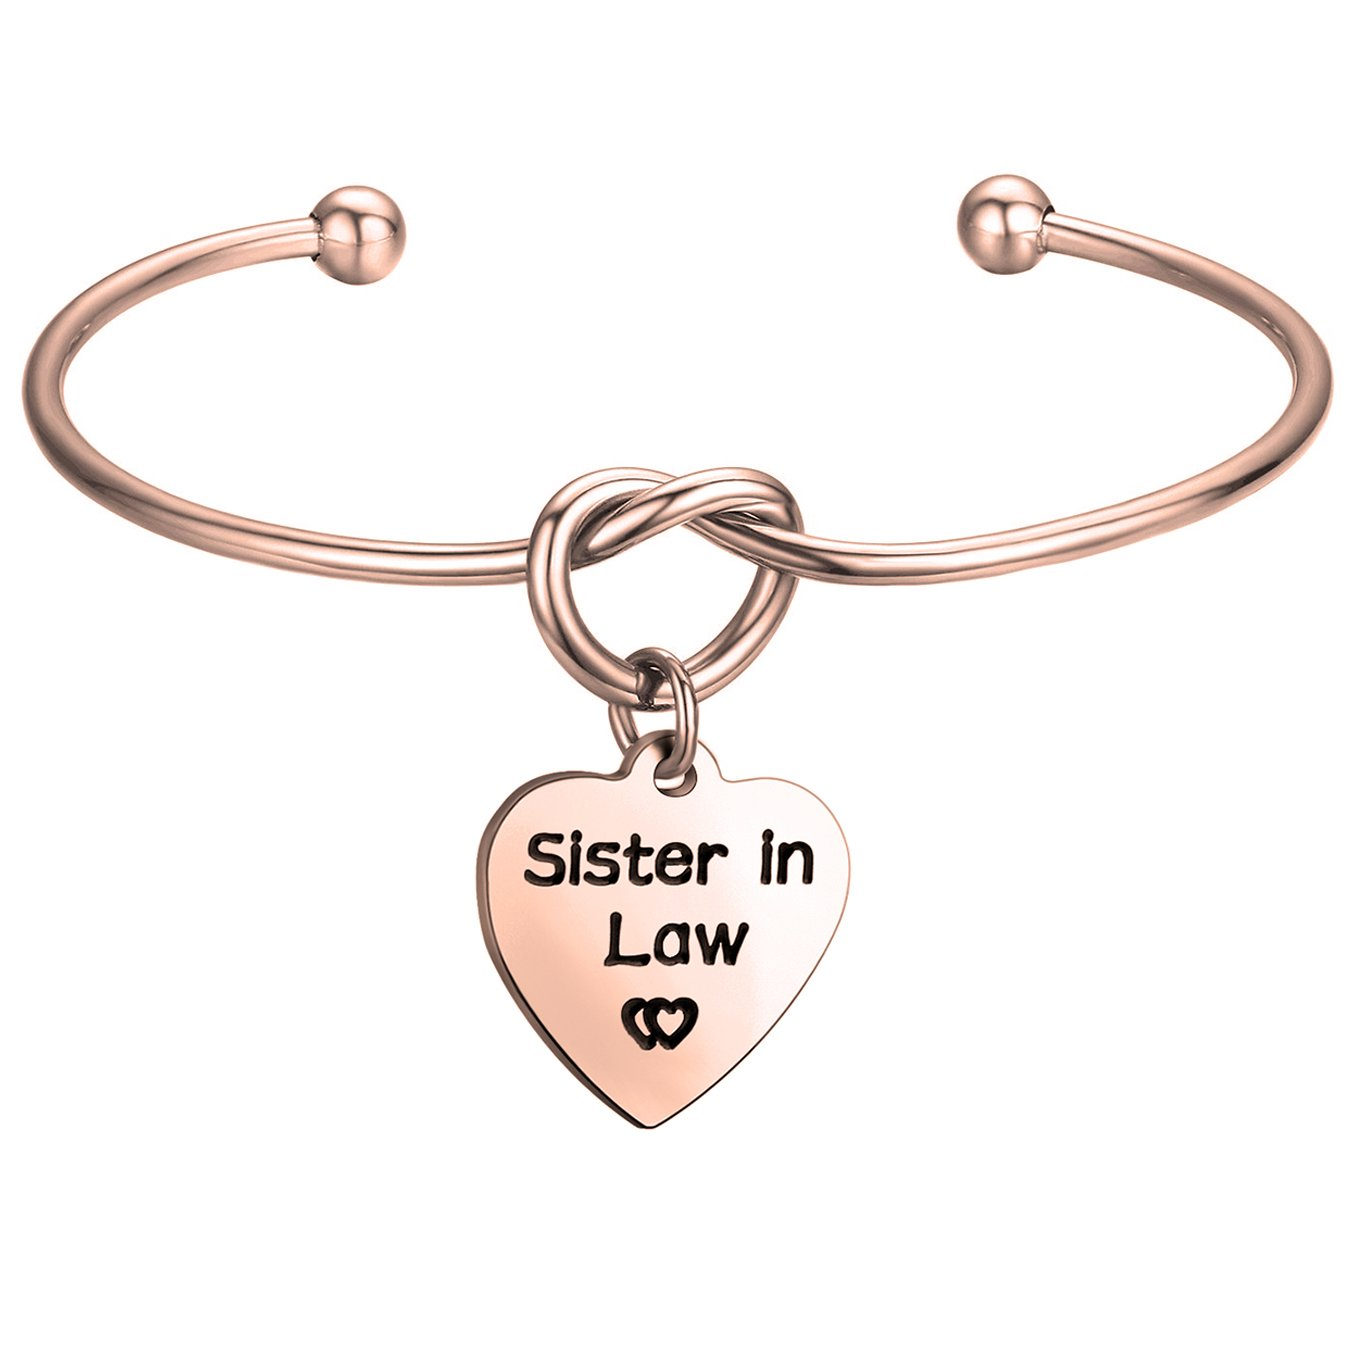 FEELMEM Sister in Law Gift Sister in Law Bracelet-Simple Love Knot with Heart-Shaped Charm Bangle Bracelet-Sister of The Groom Gift-Maid of Honor Gift-Wedding Jewelry(Heart Charm-Rose Gold)